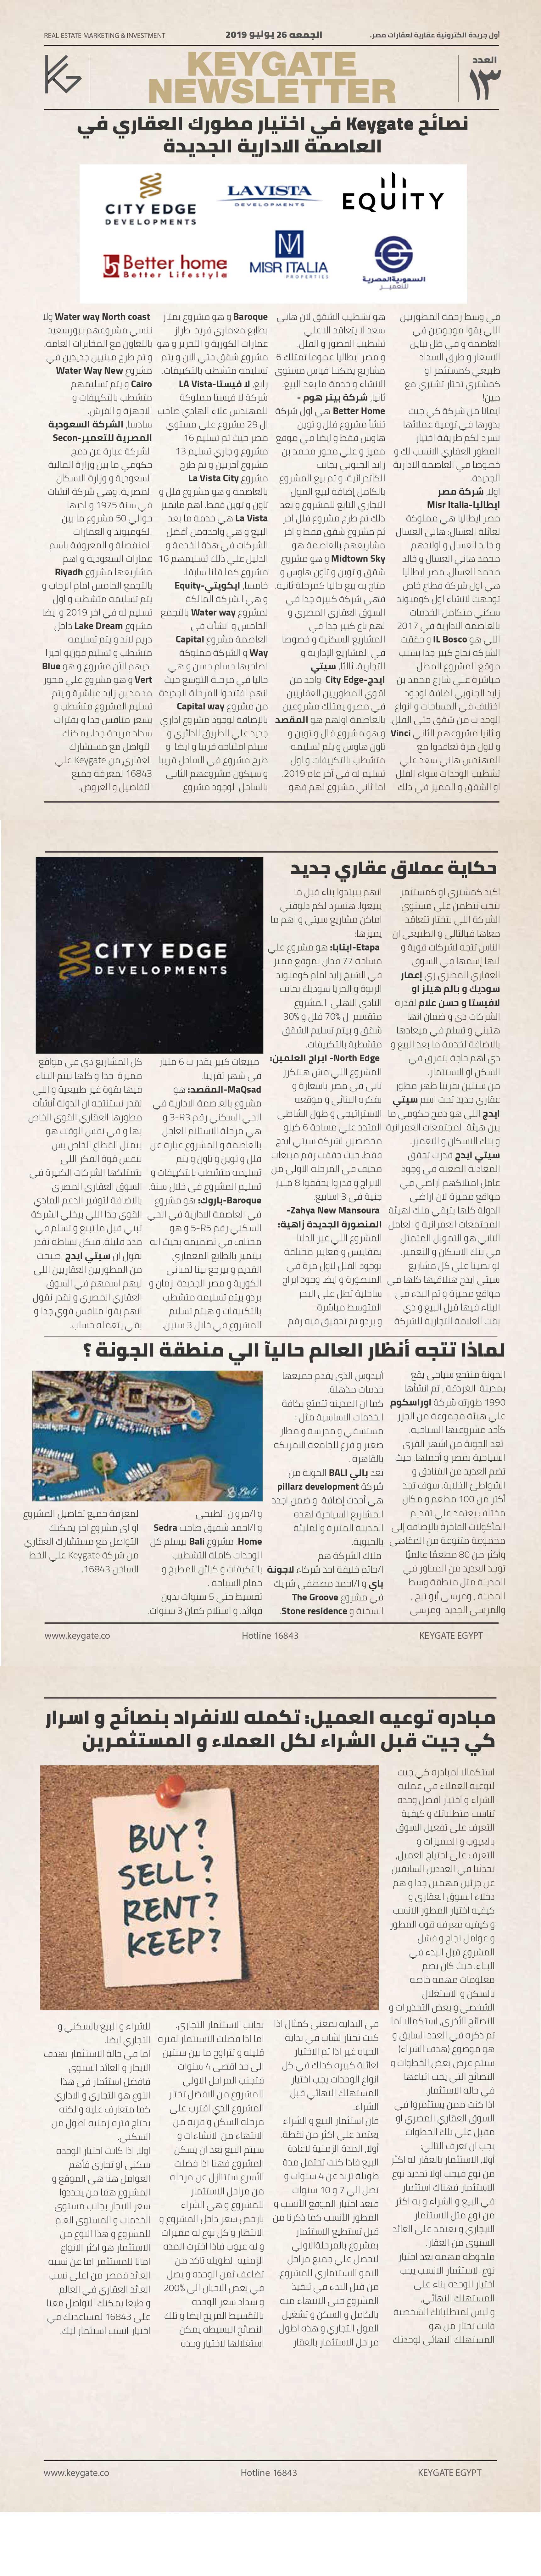 KeyGate-Real-Estate'-Newspaper-25-July